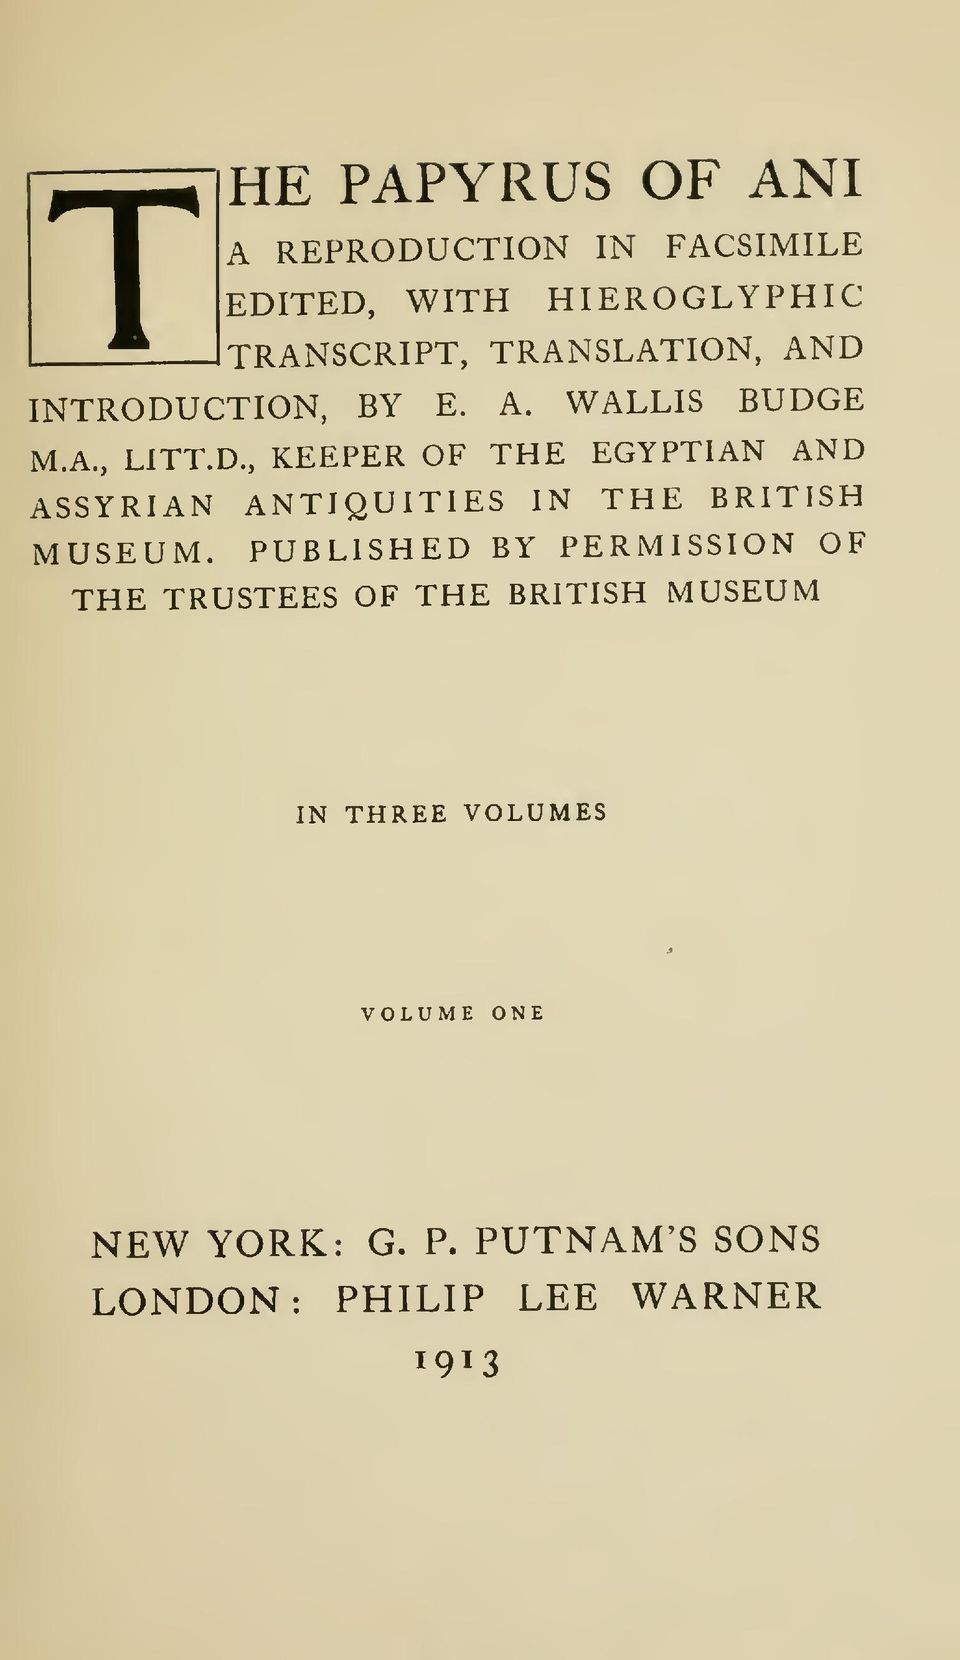 PUBLISHED BY PERMISSION OF THE TRUSTEES OF THE BRITISH MUSEUM IN THREE VOLUMES VOLUME ONE